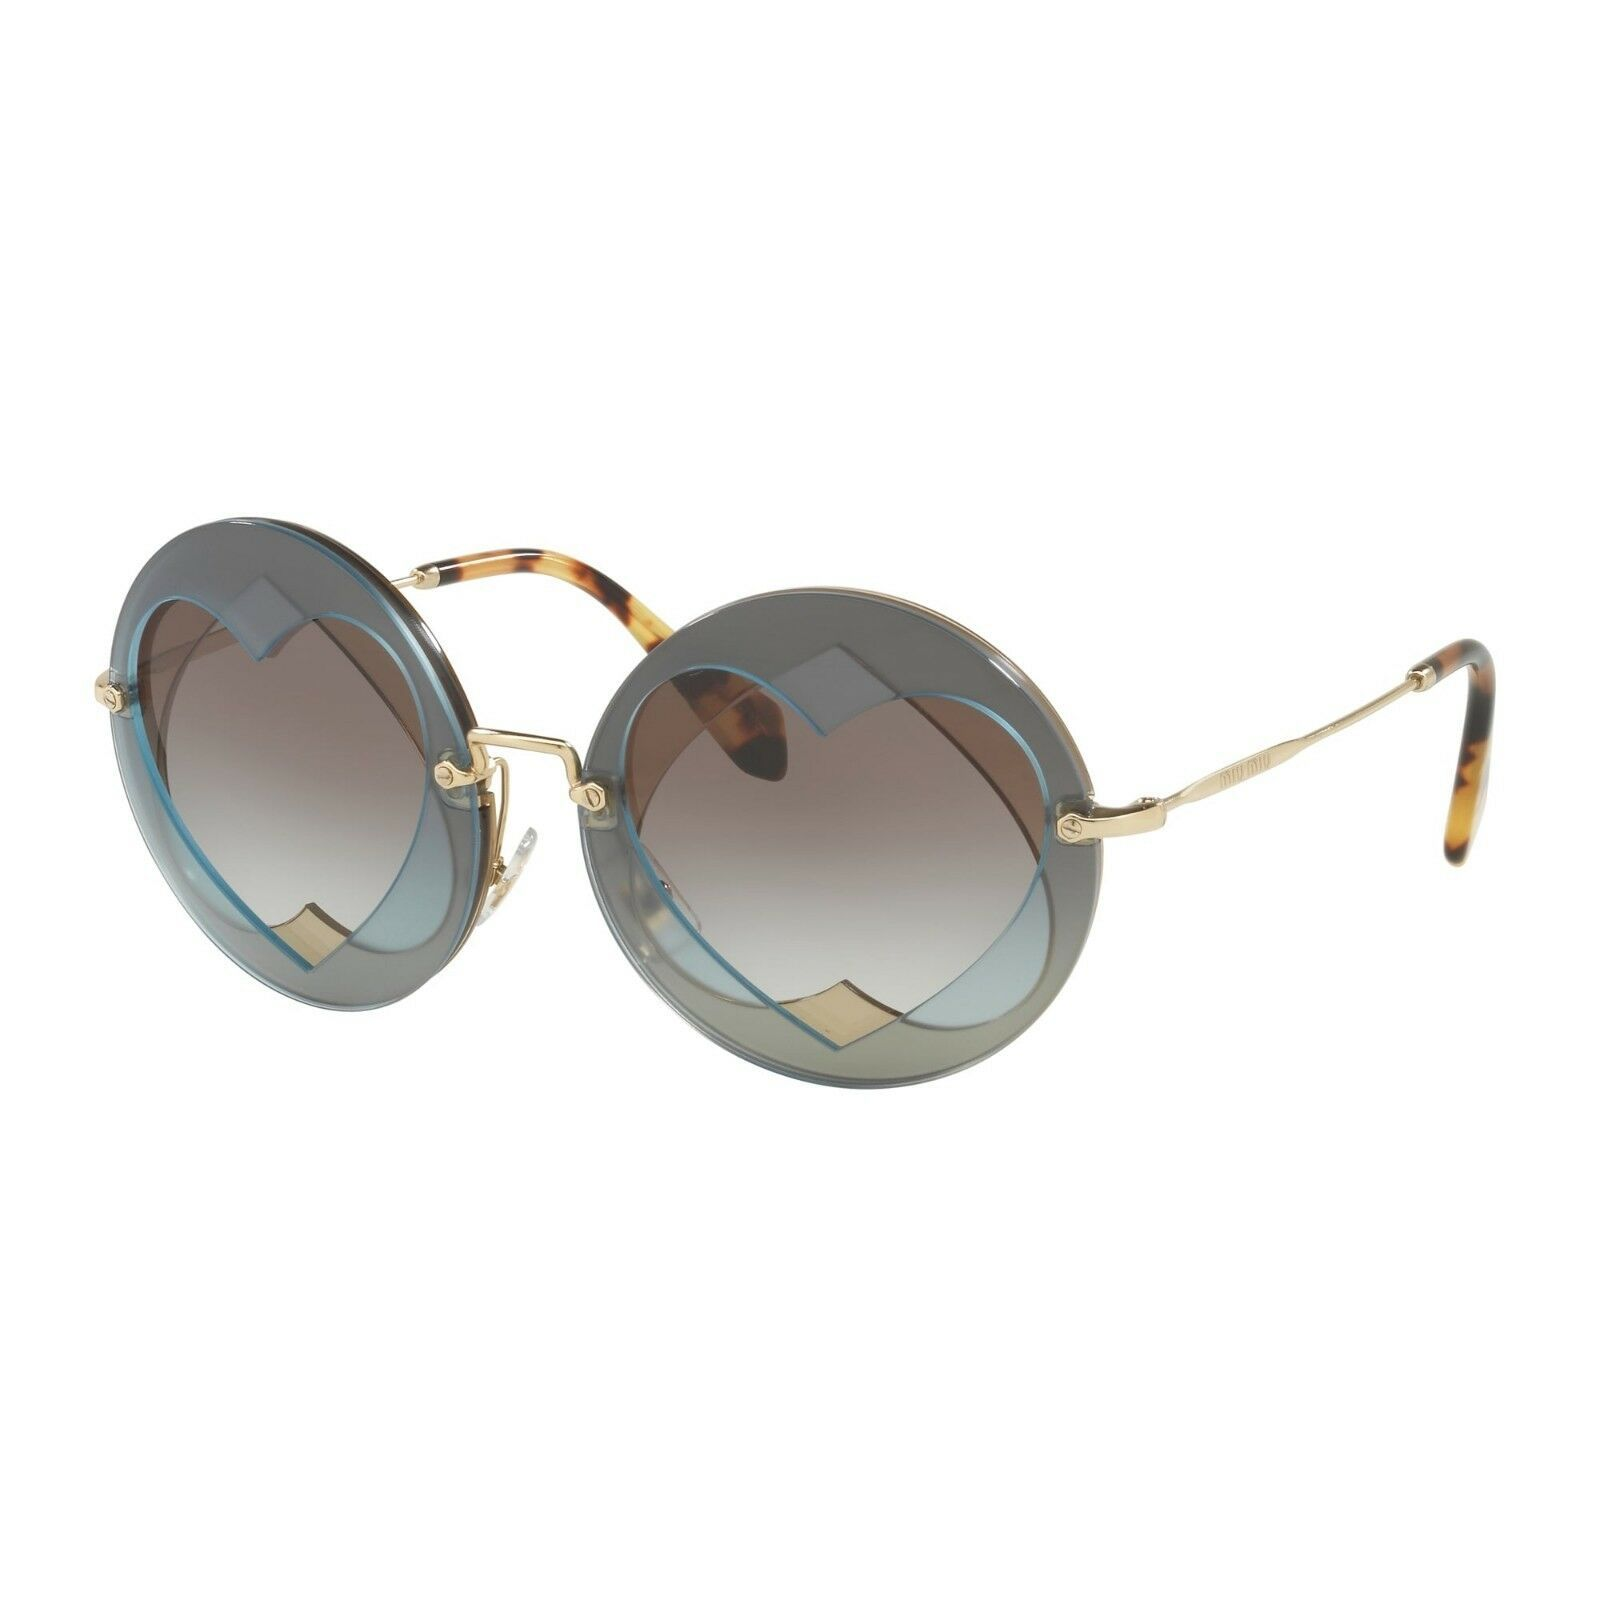 73c967c32ec9 NEW MIU MIU Women's 01SS Layered Double Heart Round Sunglasses  Azure/Hazelnut - $176.42